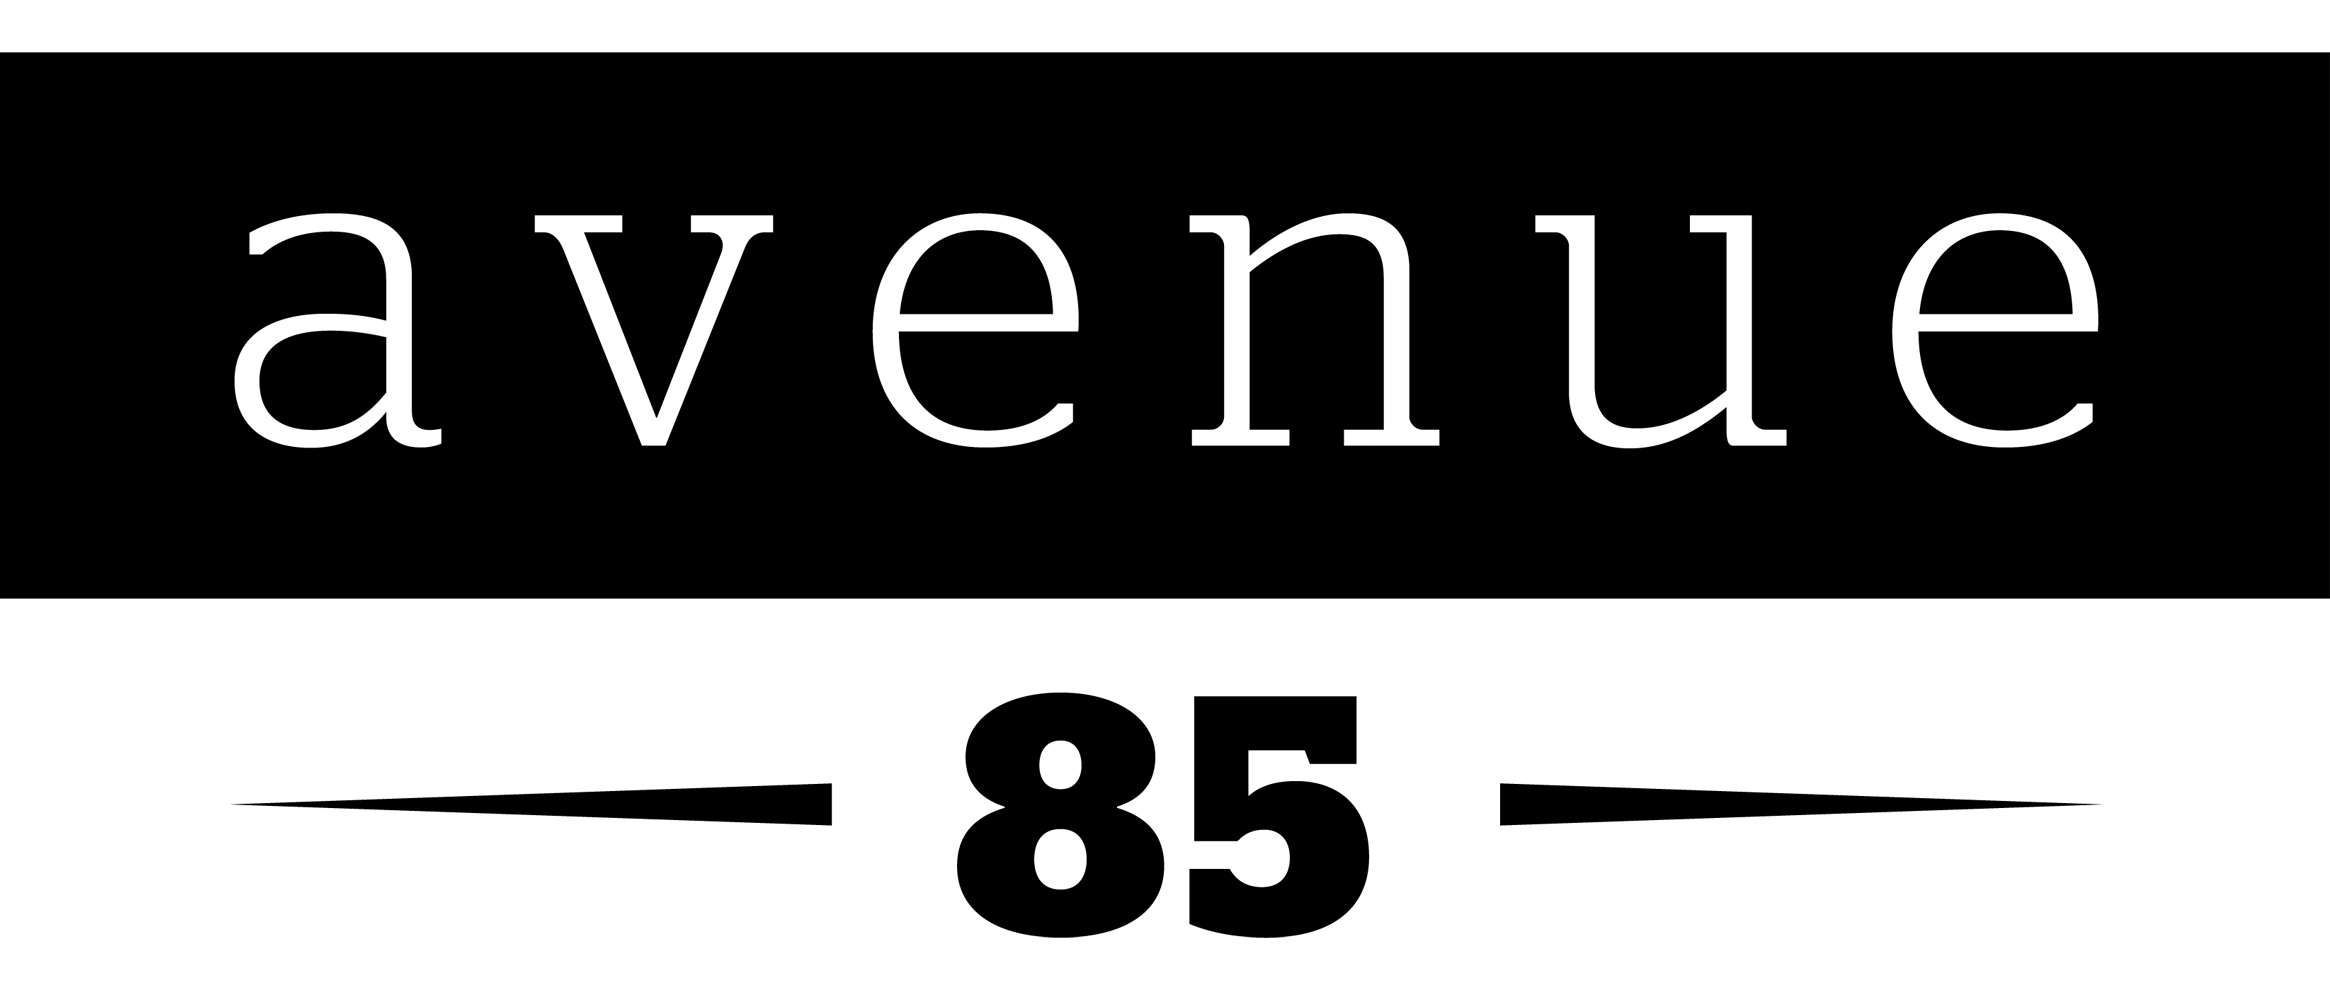 Avenue85.co.uk